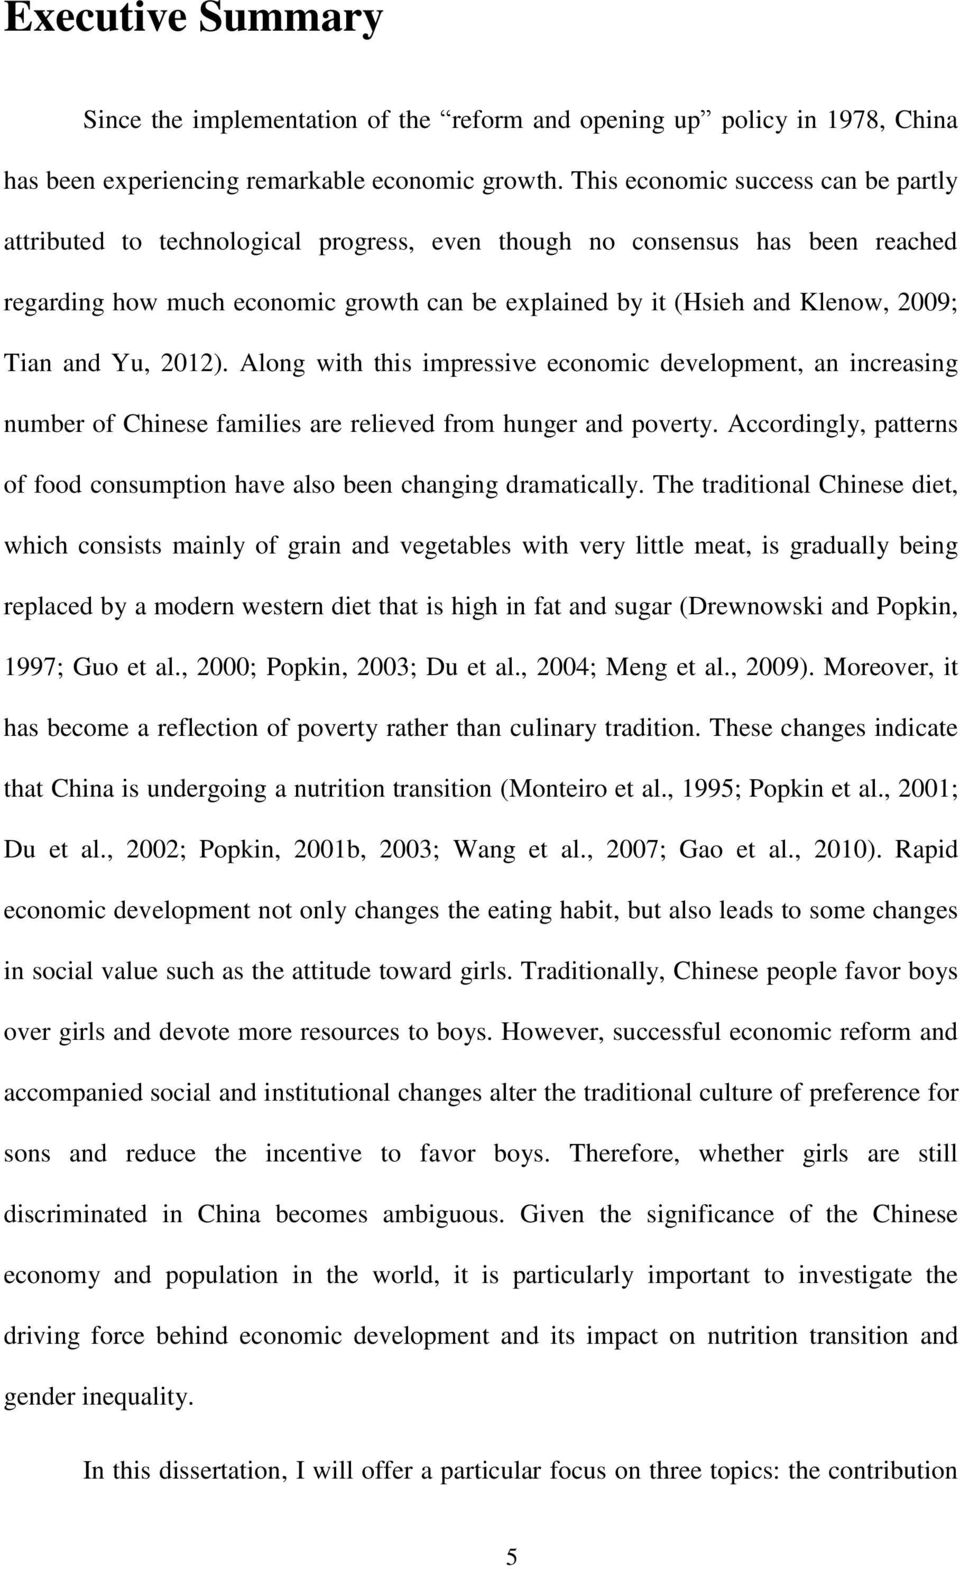 Tian and Yu, 2012). Along with this impressive economic development, an increasing number of Chinese families are relieved from hunger and poverty.